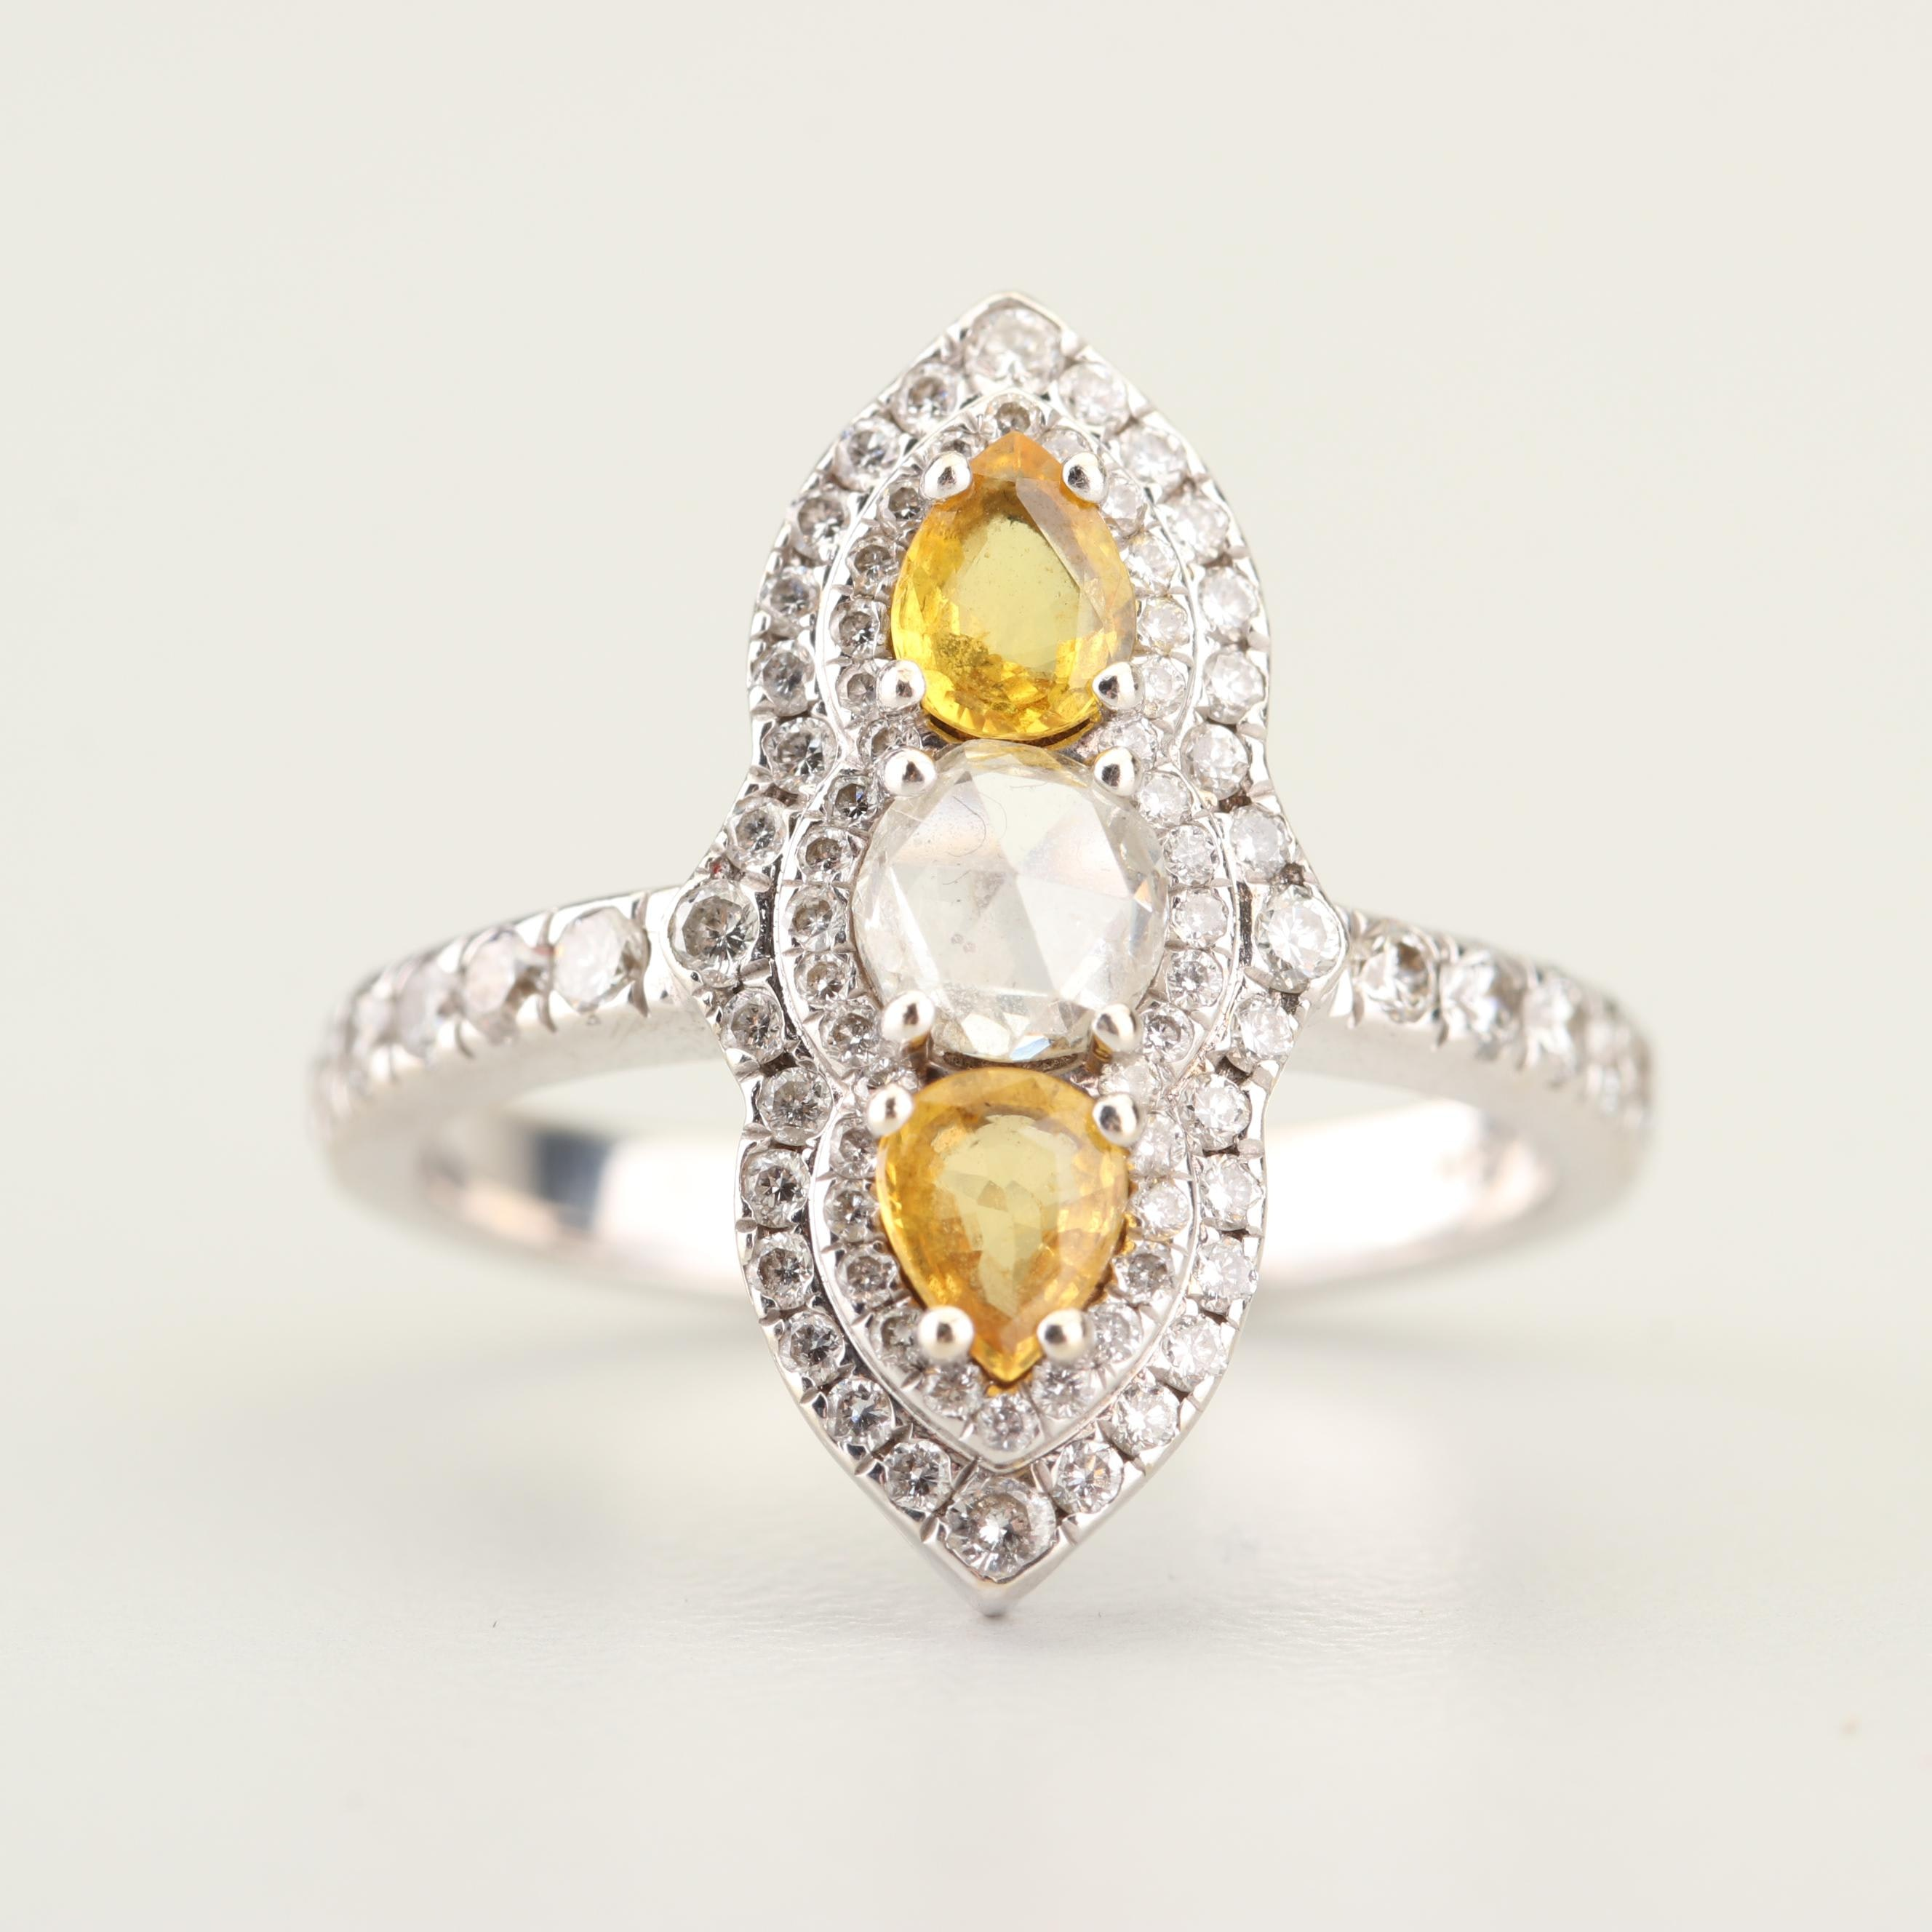 18K White Gold Rose and Round Brilliant Cut Diamond and Yellow Sapphire Ring